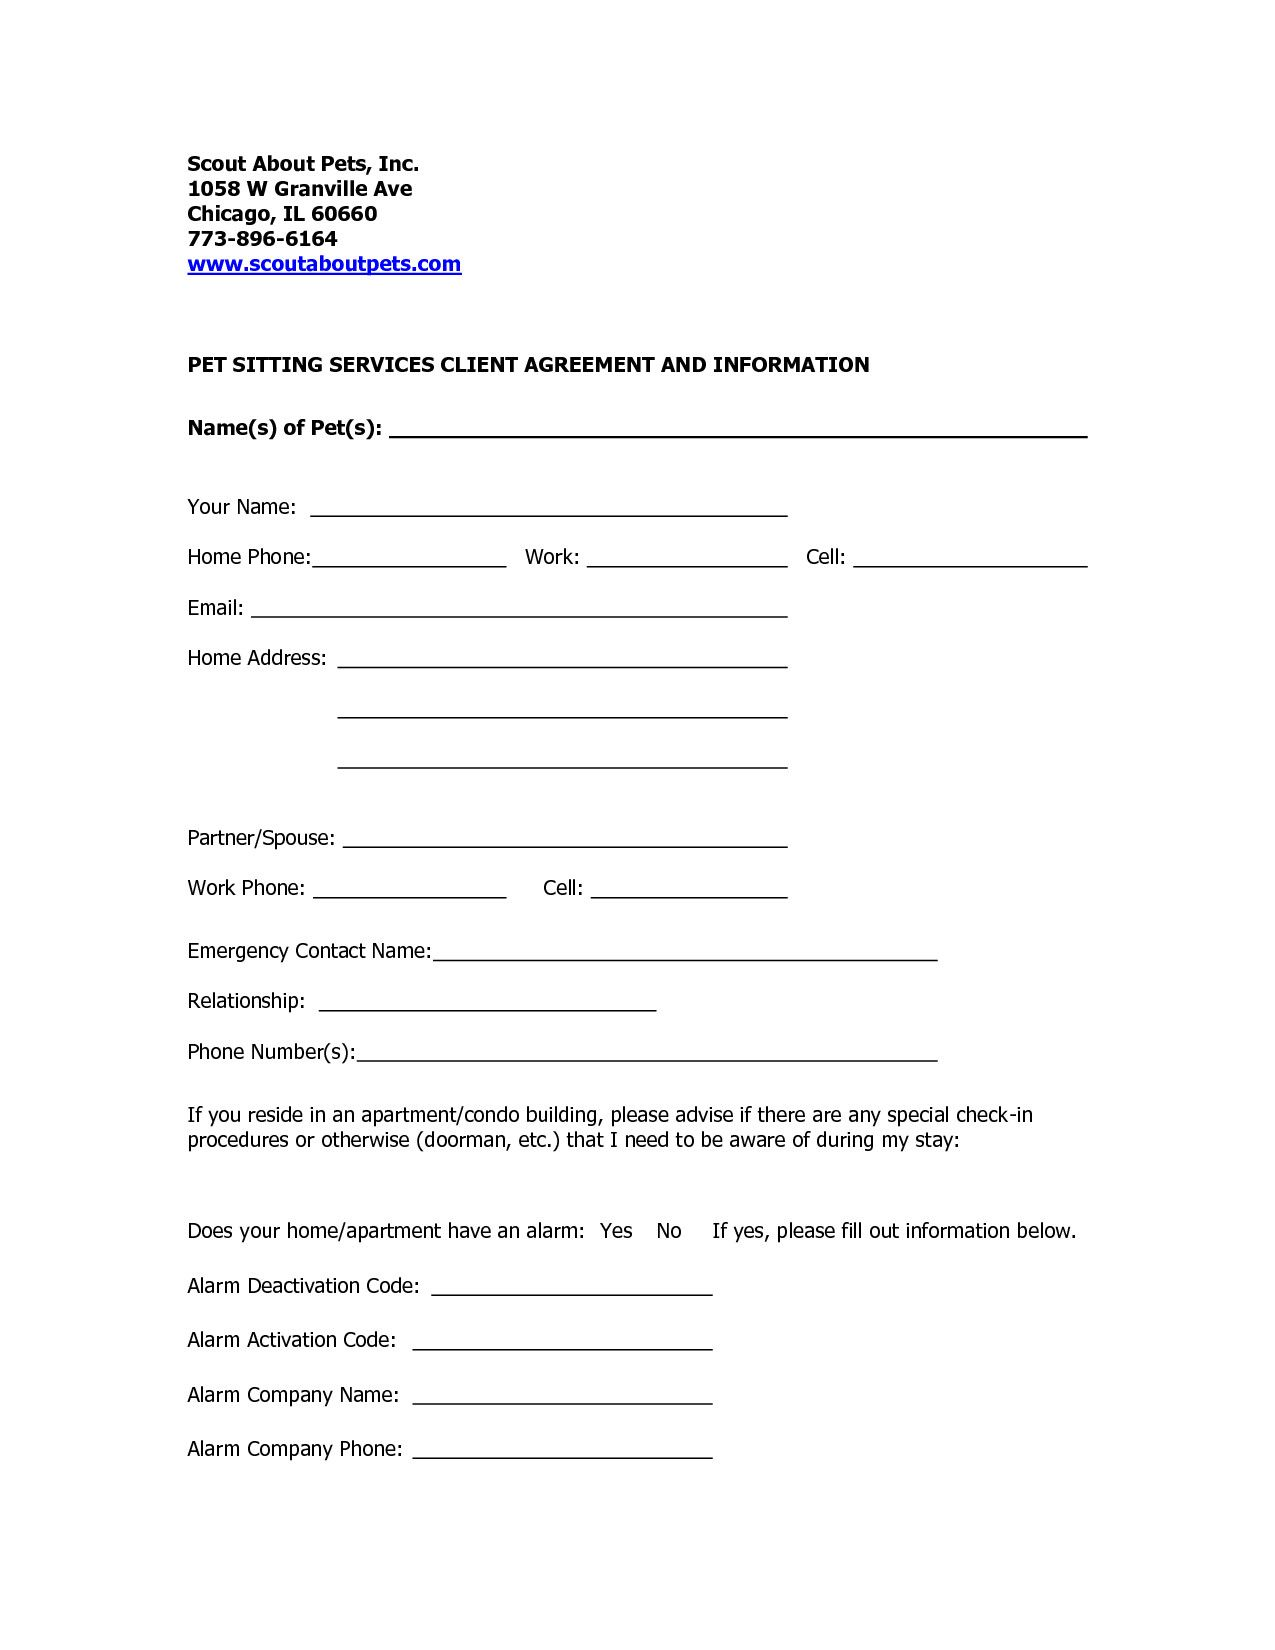 Dog Training Contract Template Unique Professional Pet Sitting